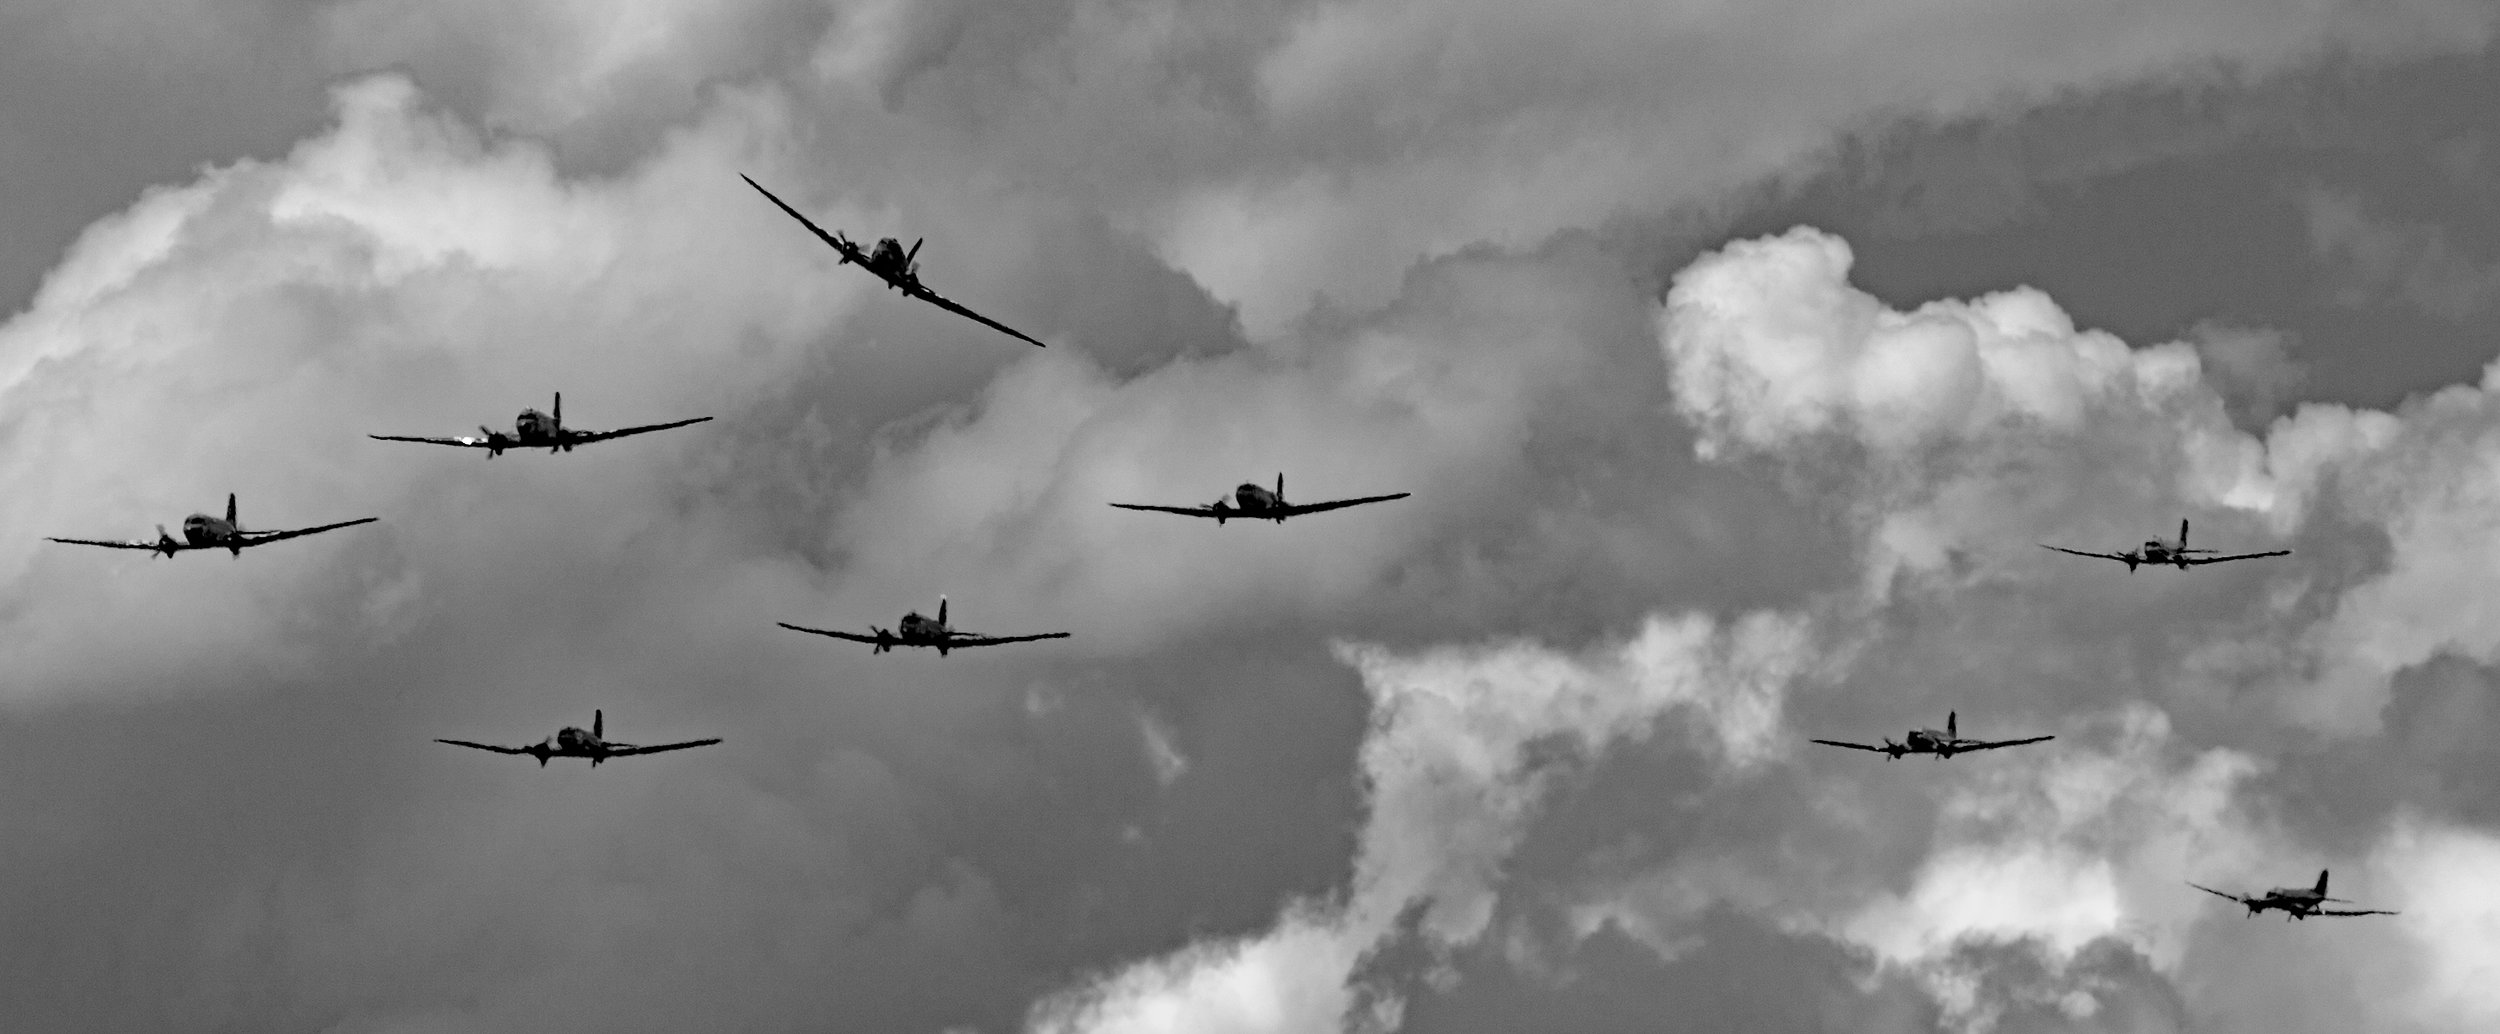 """Dak's over Normandy""..D-Day Commemorations - Caen, Normandy - 6th June 2019. Photo: Peter Hampson"